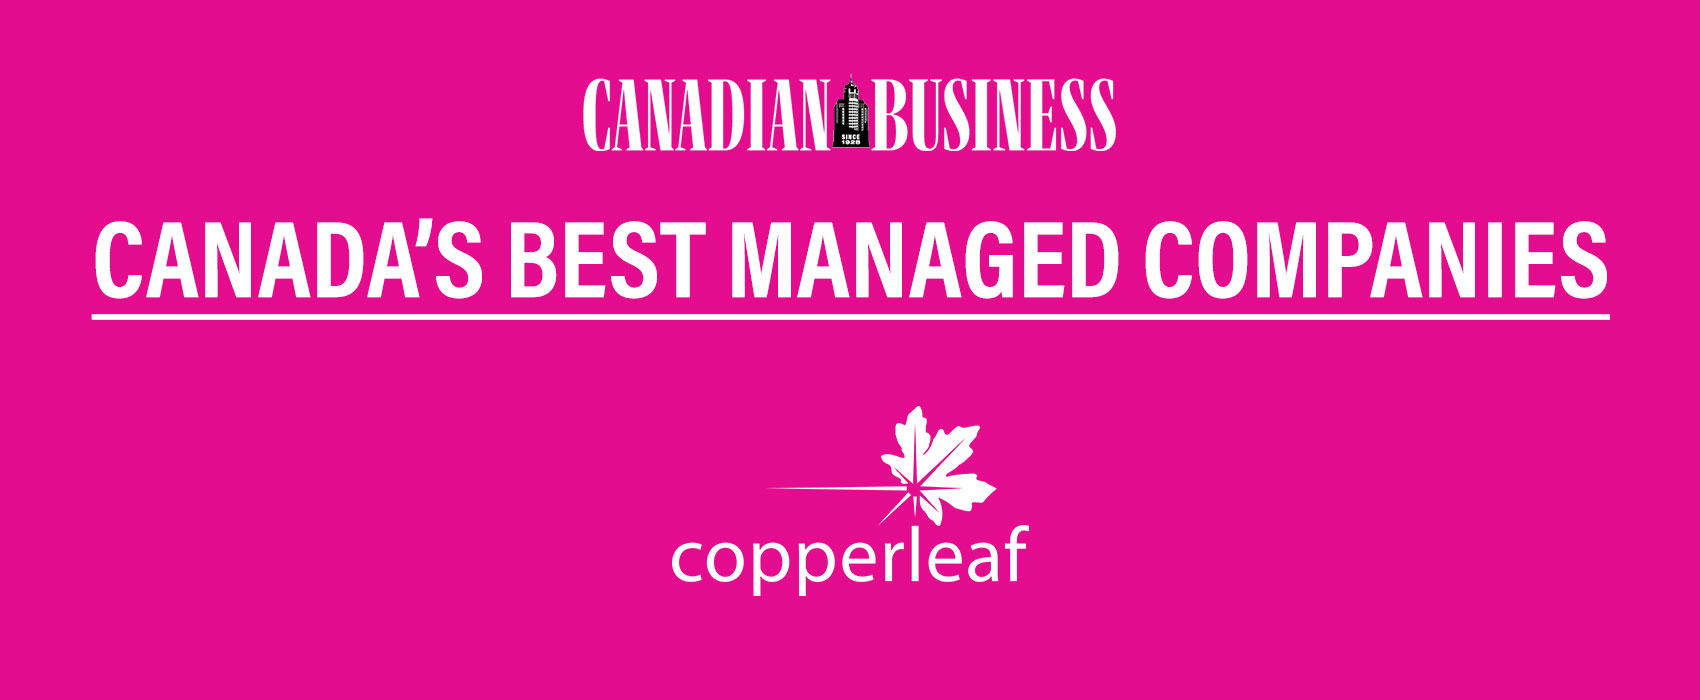 Image for Interview: Judi Hess Discusses Copperleaf's Unique Culture with Canadian Business